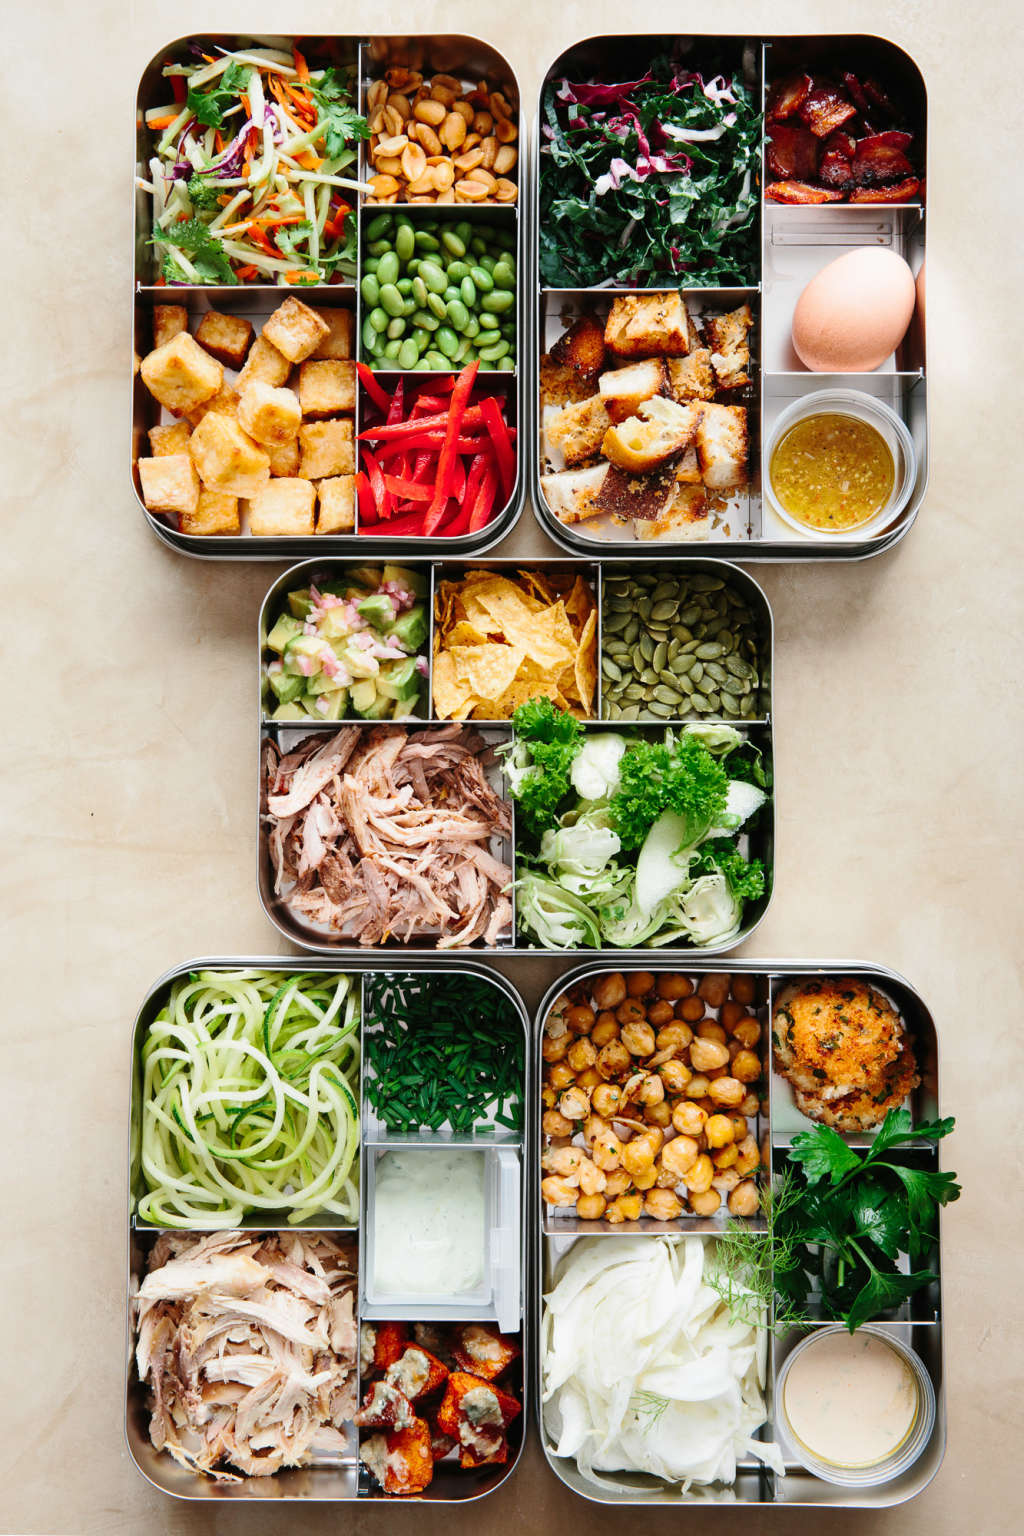 Sunday Night Salads: 5 Recipes to Make Ahead and Eat All Week